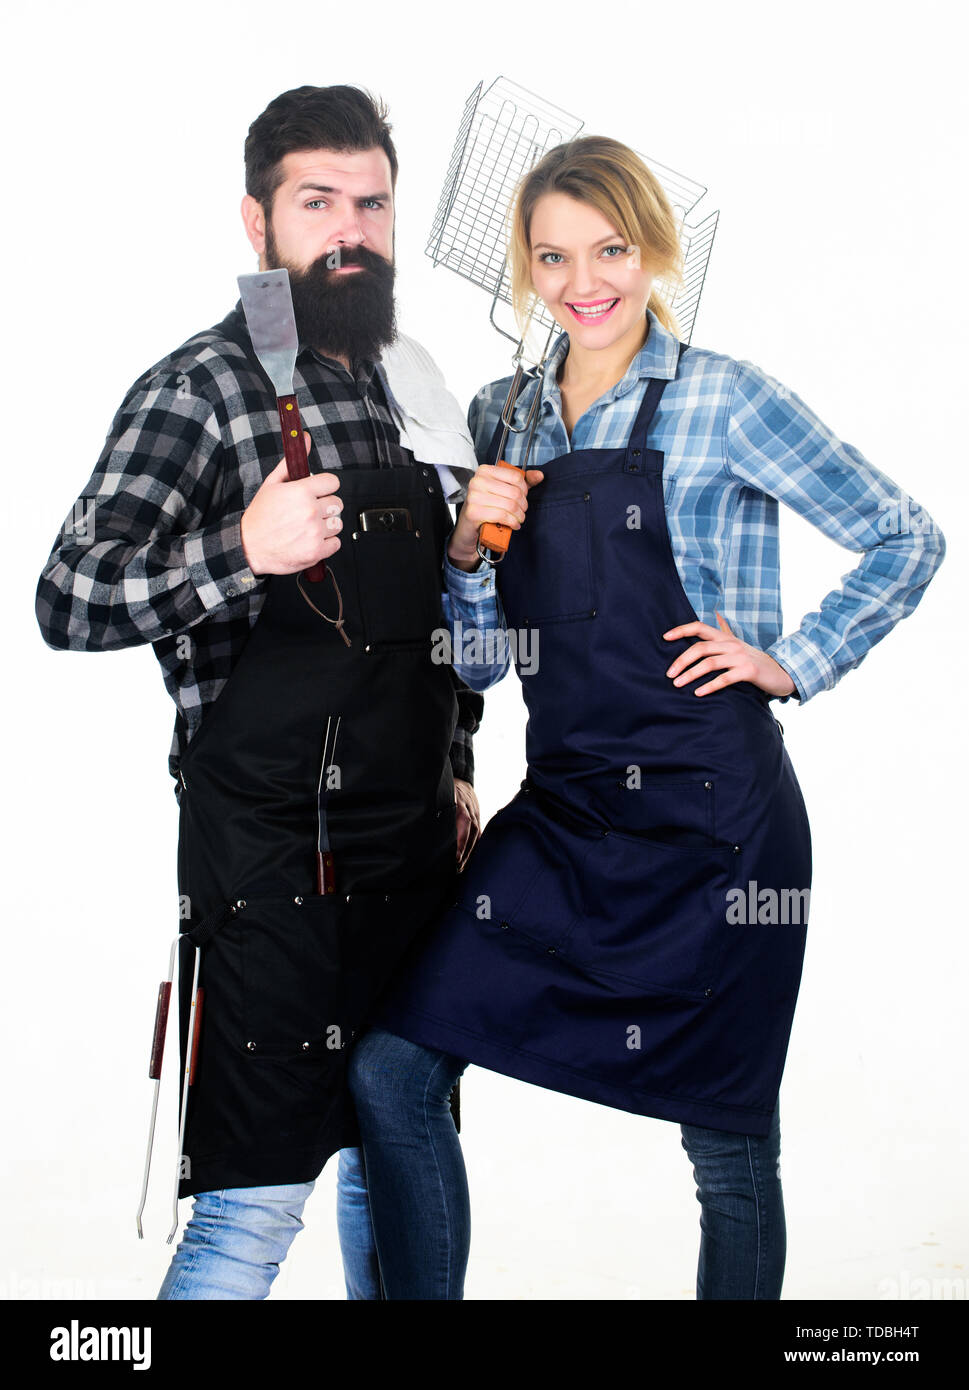 Kitchen equipment. Family weekend. Couple in love hold kitchen utensils. Man bearded hipster and girl. Preparation and culinary. Tools for roasting meat. Picnic barbecue. food cooking recipe. - Stock Image